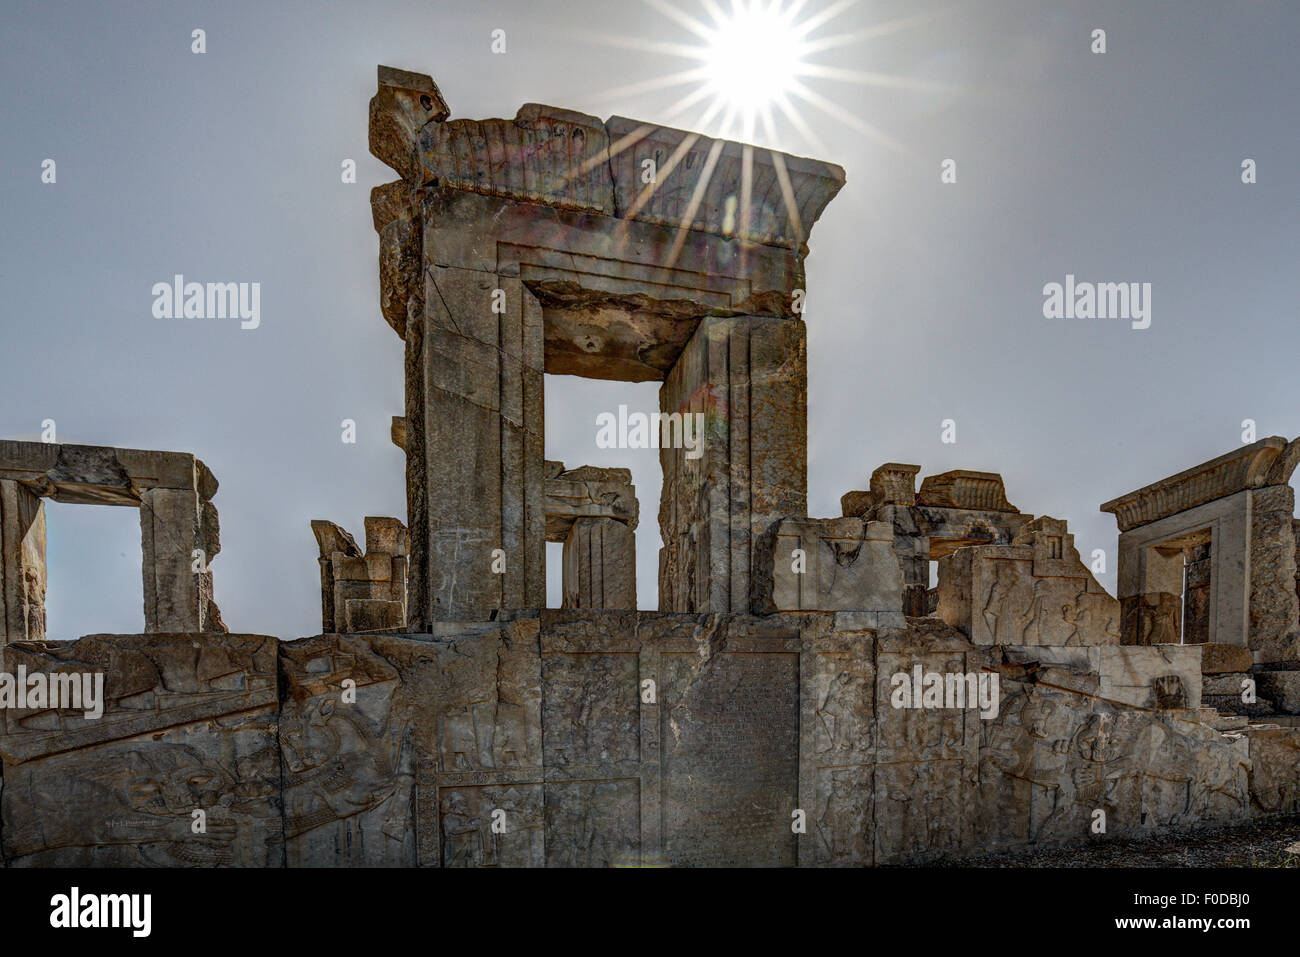 Ruines de Persepolis, Iran Photo Stock